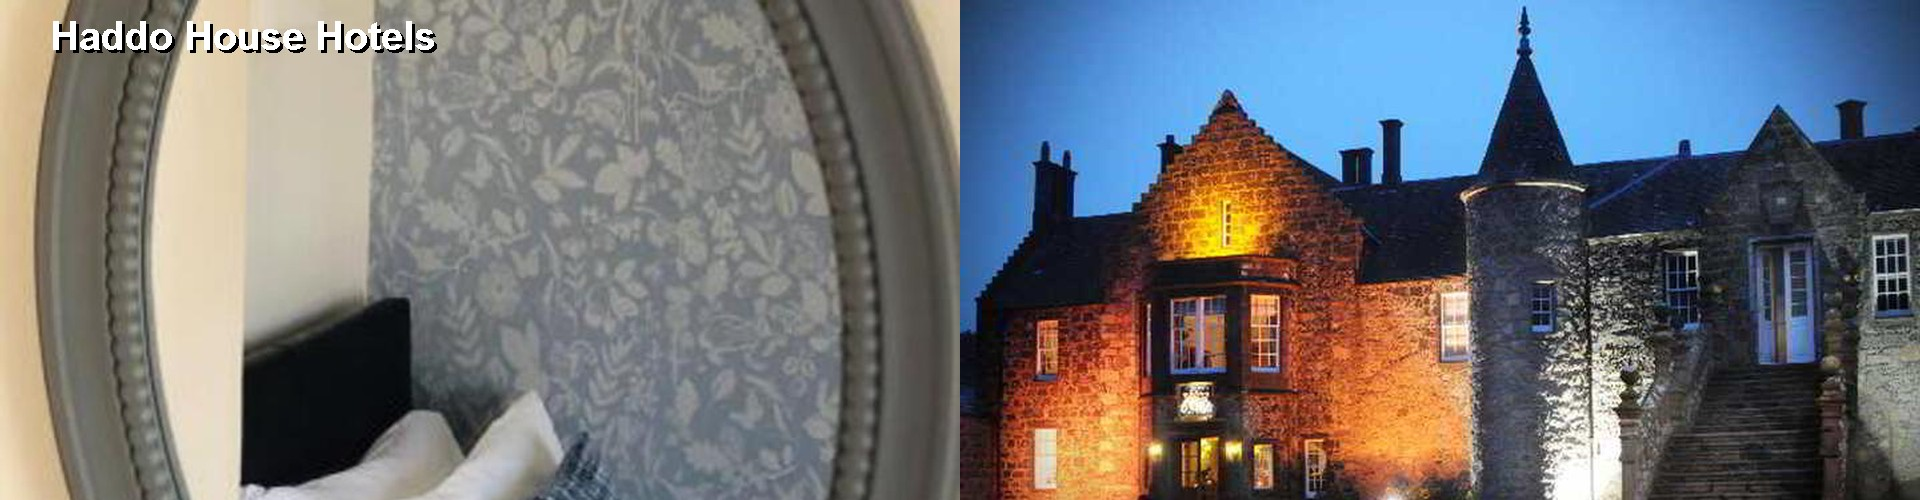 5 Best Hotels near Haddo House